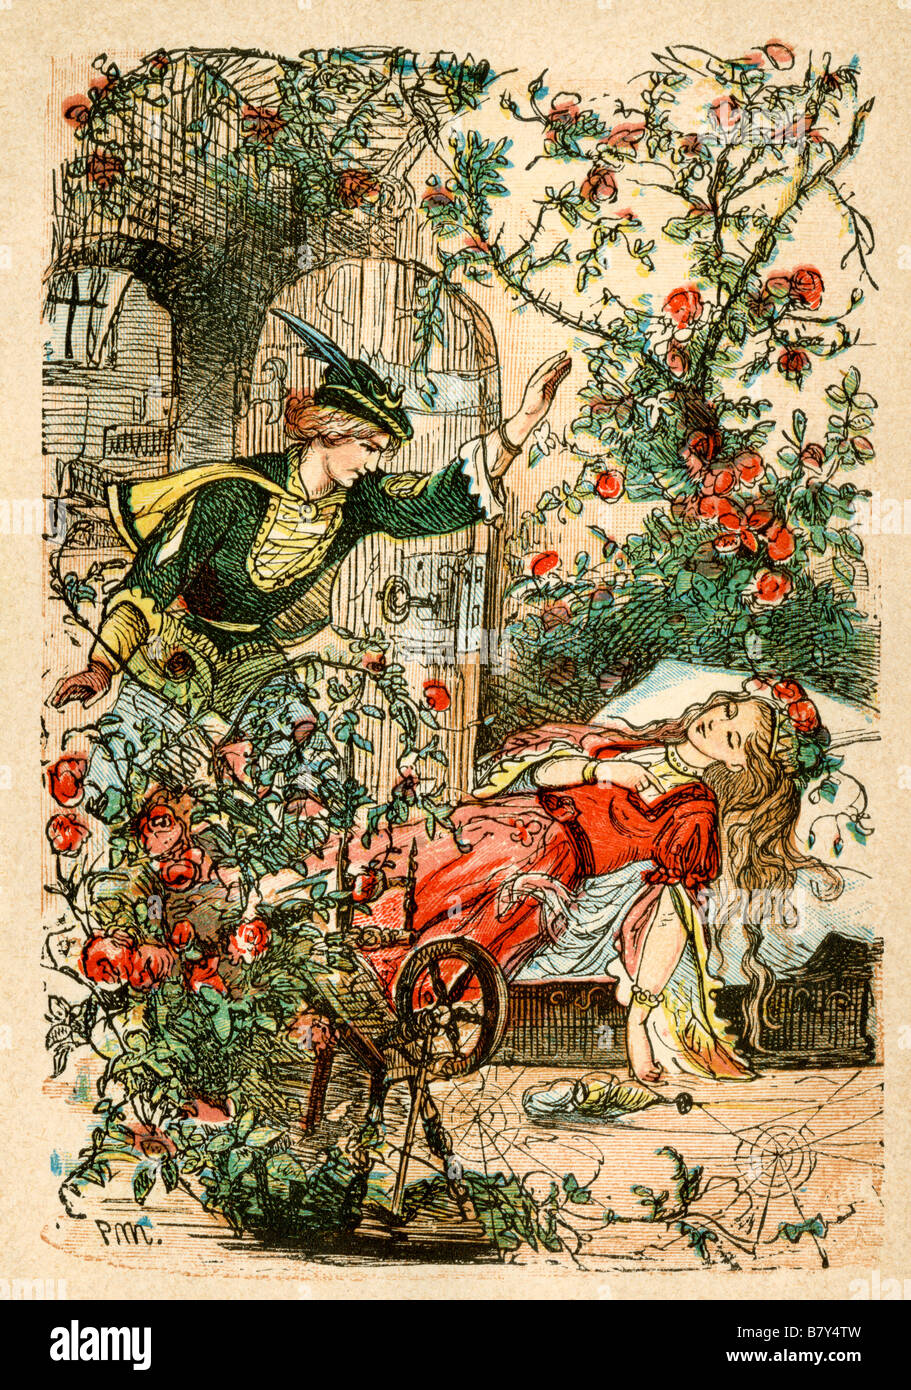 Sleeping Beauty from a Berlin edition of Grimms Fairy Tales 1865. Hand-colored woodcut illustration - Stock Image